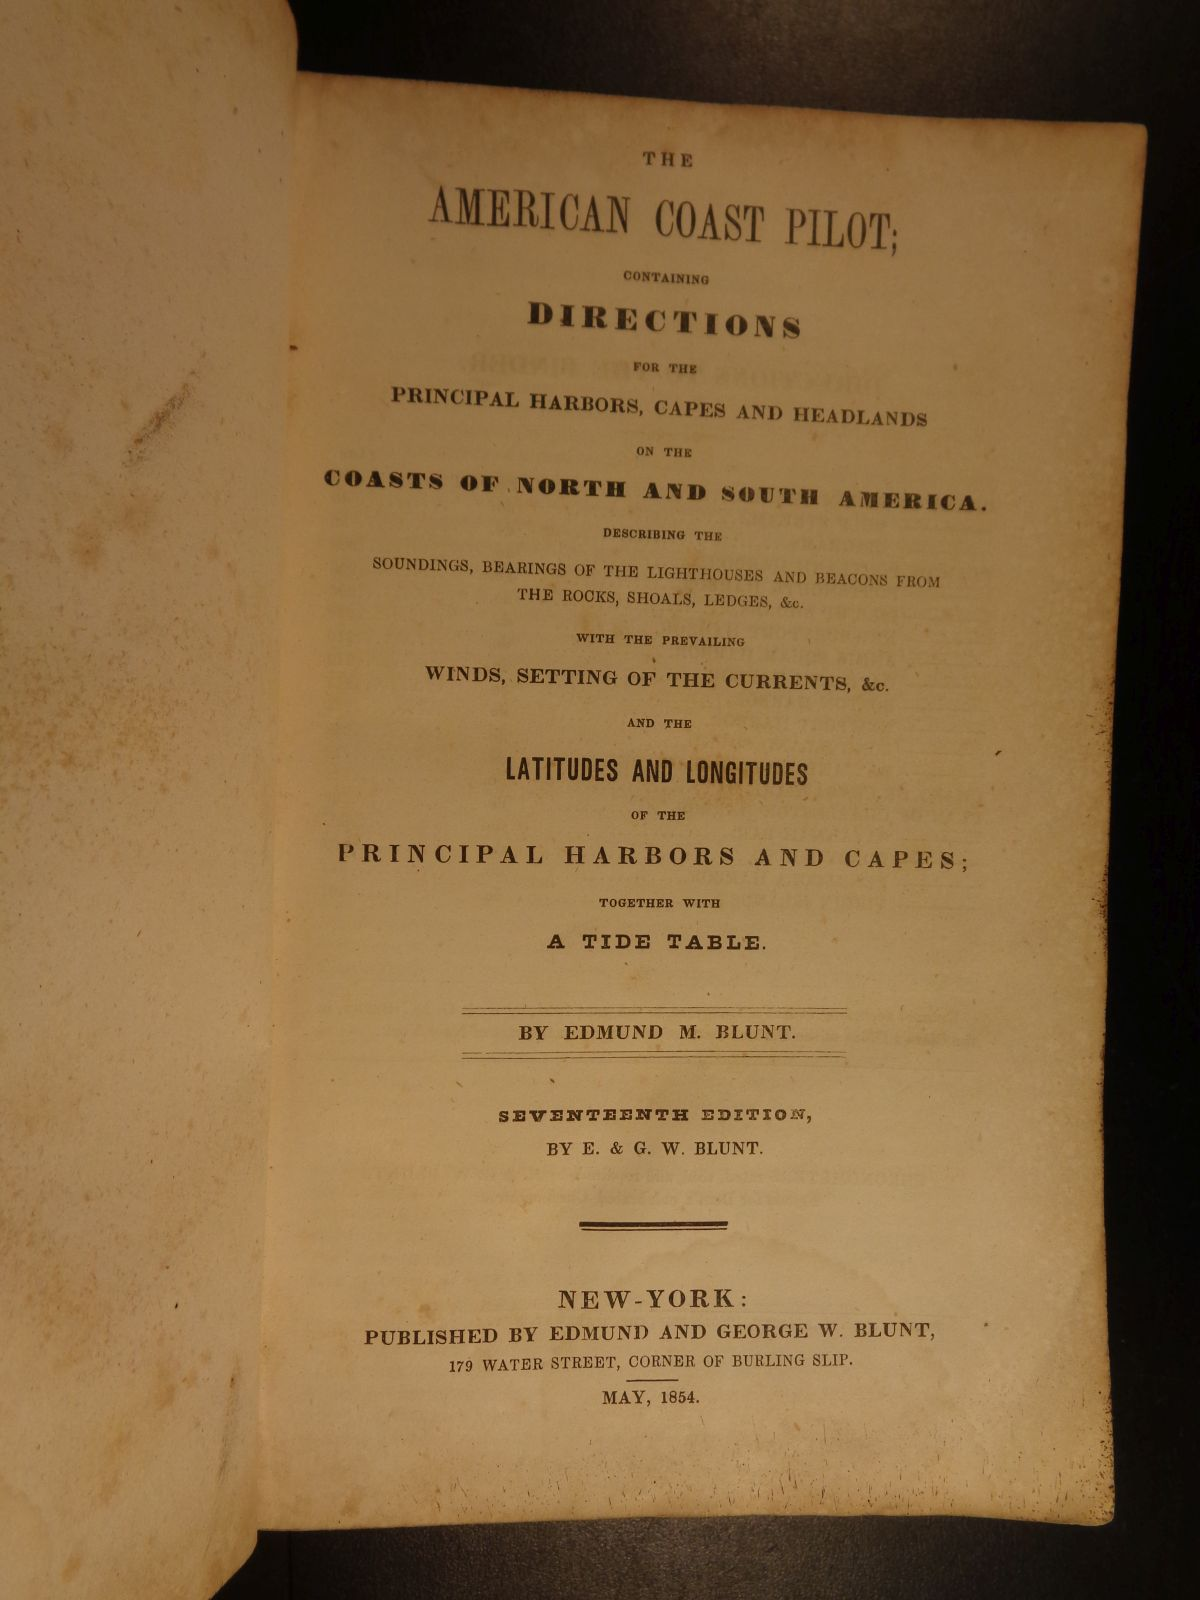 Schilb antiquarian 1854 american coast pilot by blunt nautical guide navigation lighthouses harbors nvjuhfo Image collections